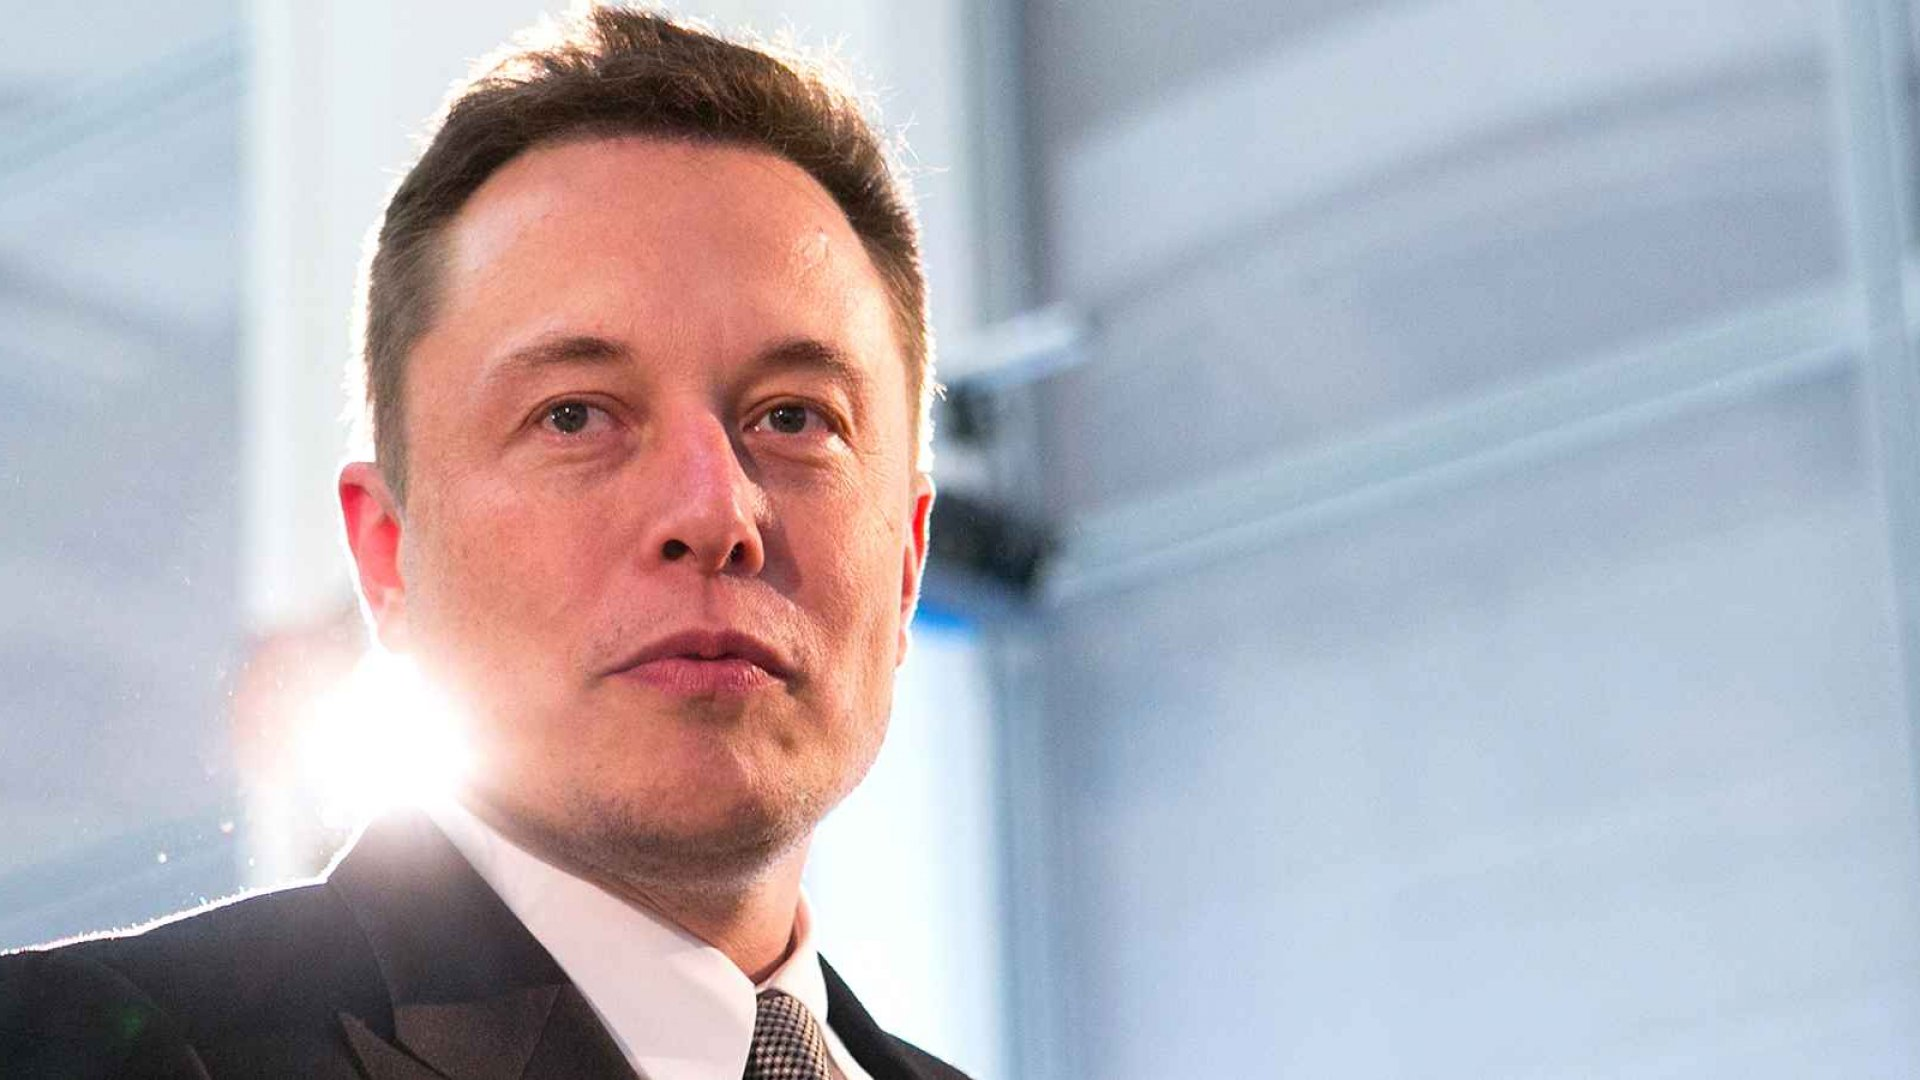 Why Elon Musk Is Nervous About Artificial Intelligence